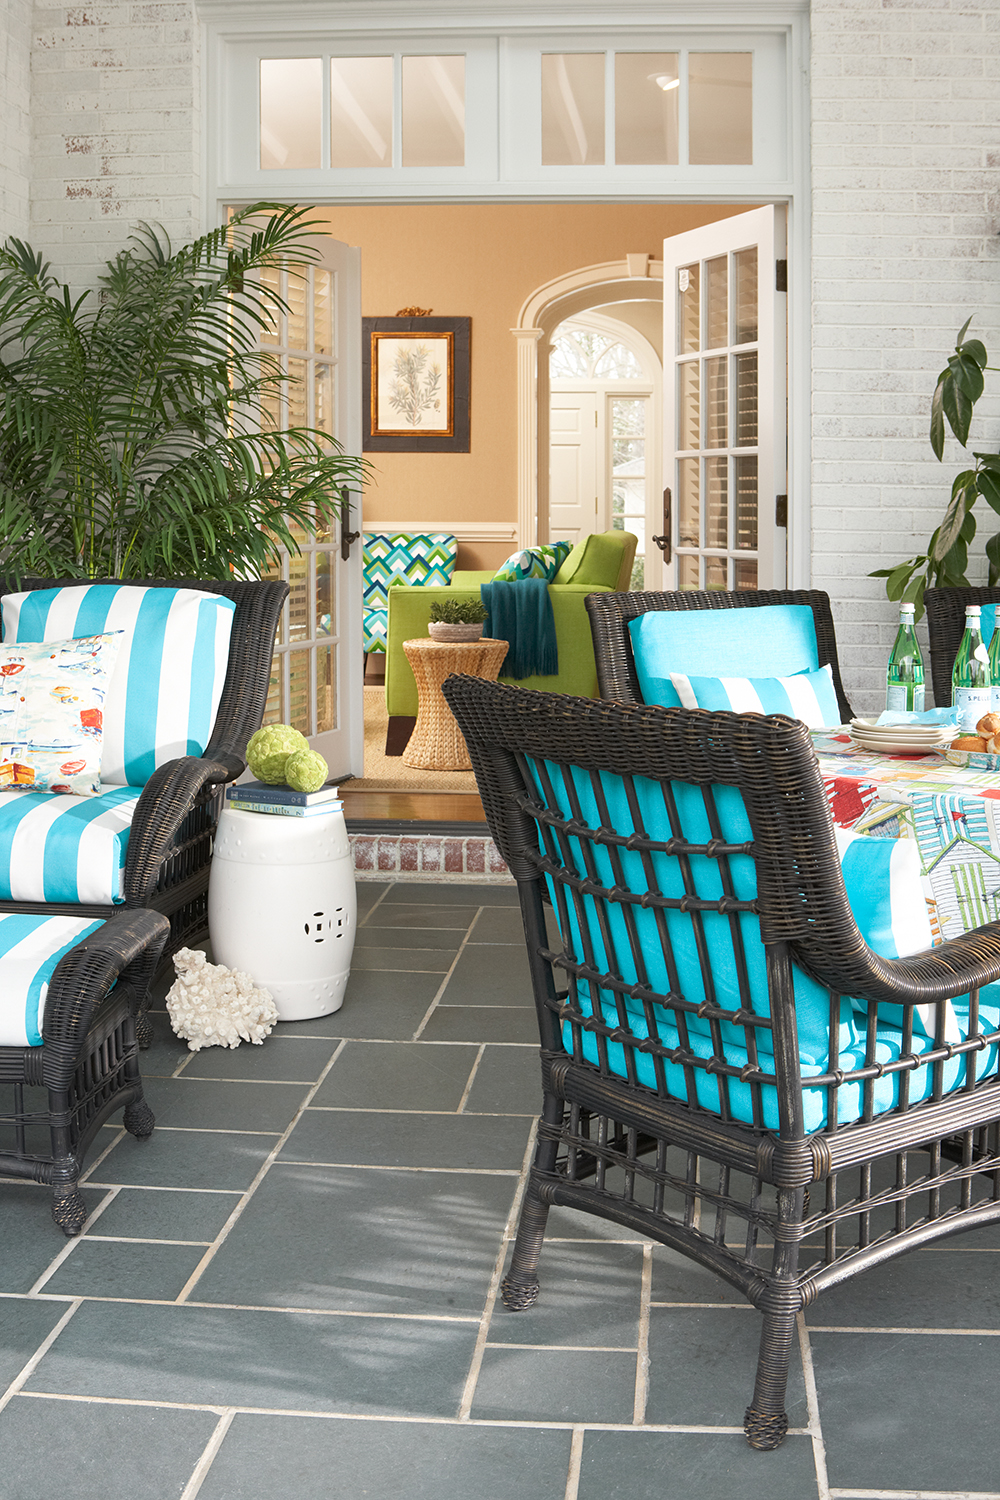 Lounge Chair Cushions: Cabana Turquoise Accent Pillow: Pinnakerbay-Sailor Dining Chairs: Rave-Aqua Accent Pillows: Cabana Turquoise Table Cloth: Beachhuts-Cabana